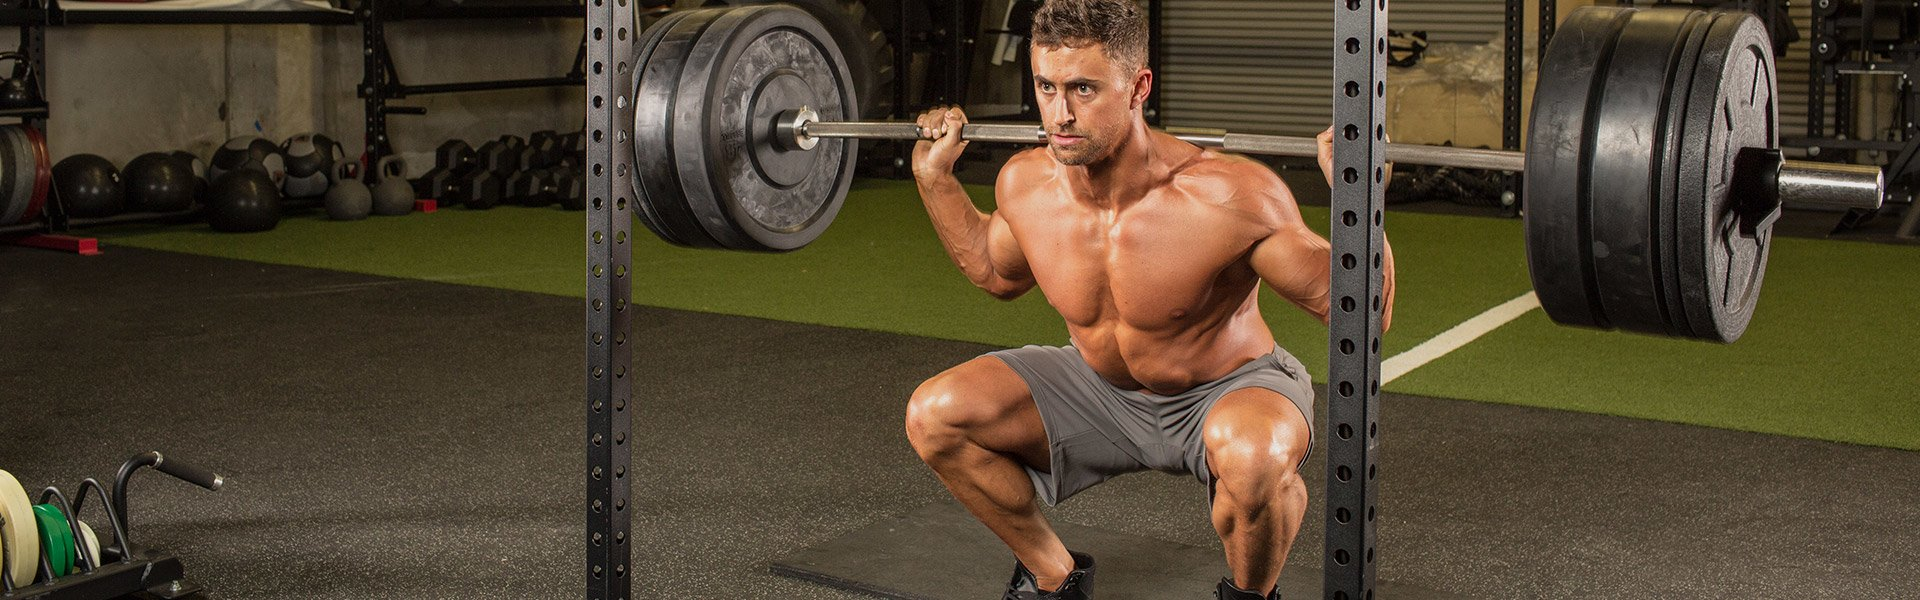 6 Leg Workouts To Supersize Your Lower Body!